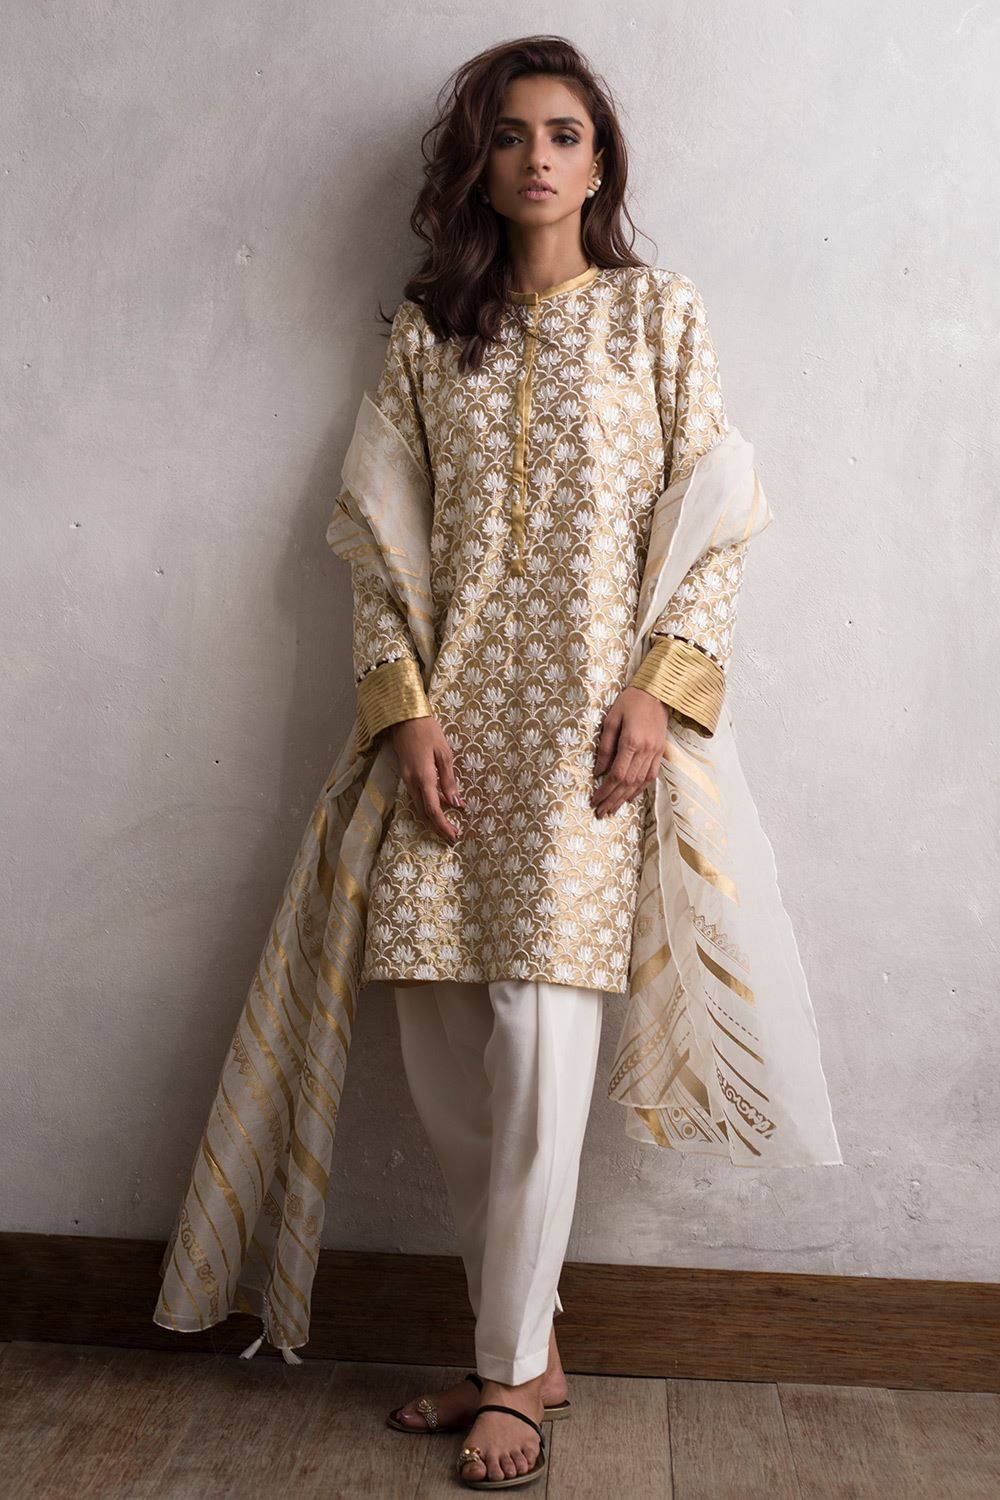 978e3bbfad 3 piece Pakistani Golden color tissue dress by Nida Azwer Luxury clothes  2018